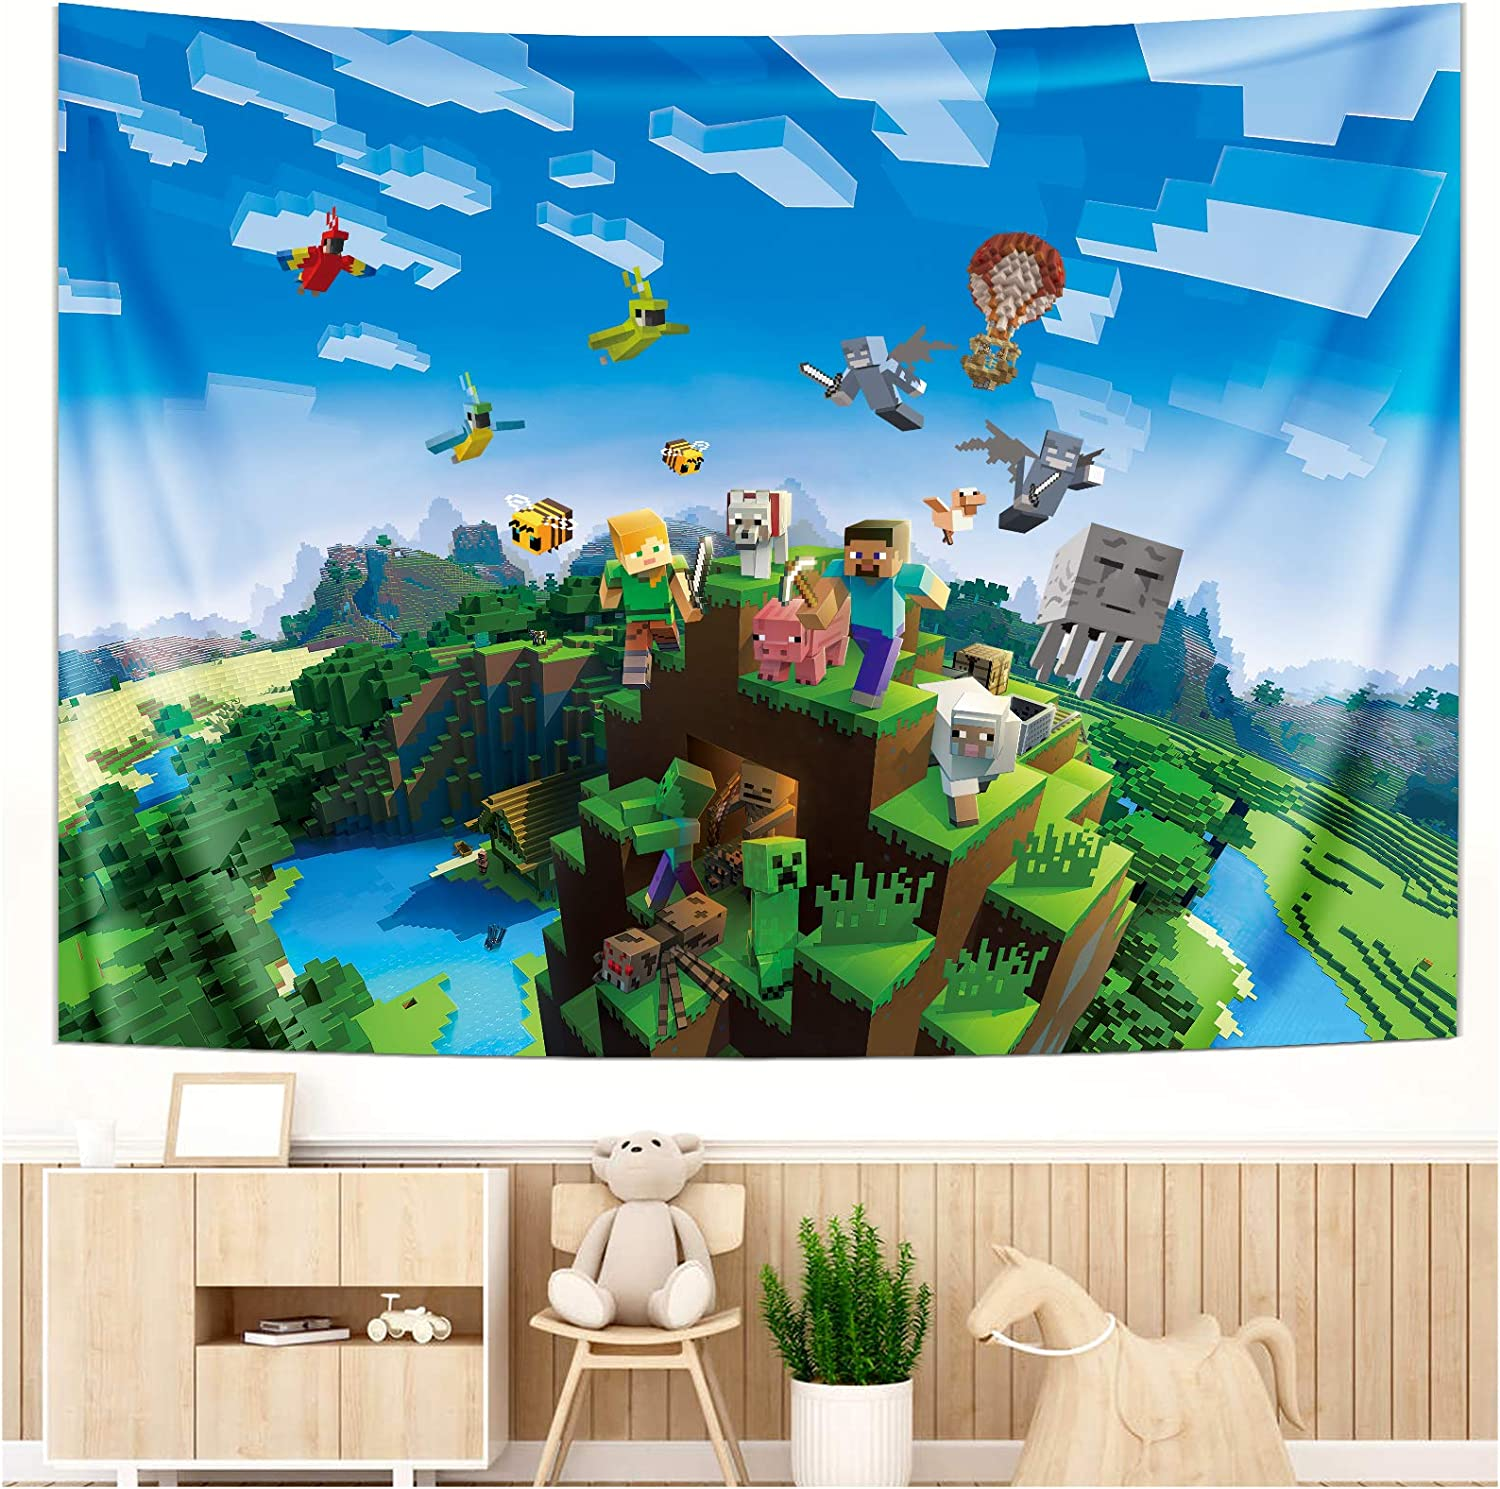 Wall Tapestry - Popular Video Game Enthusiast Print Minecraft Wall Hanging Blanket Handicrafts Polyester Fabric Wall Décor - Home Bedroom Living Room Dorm Decorations